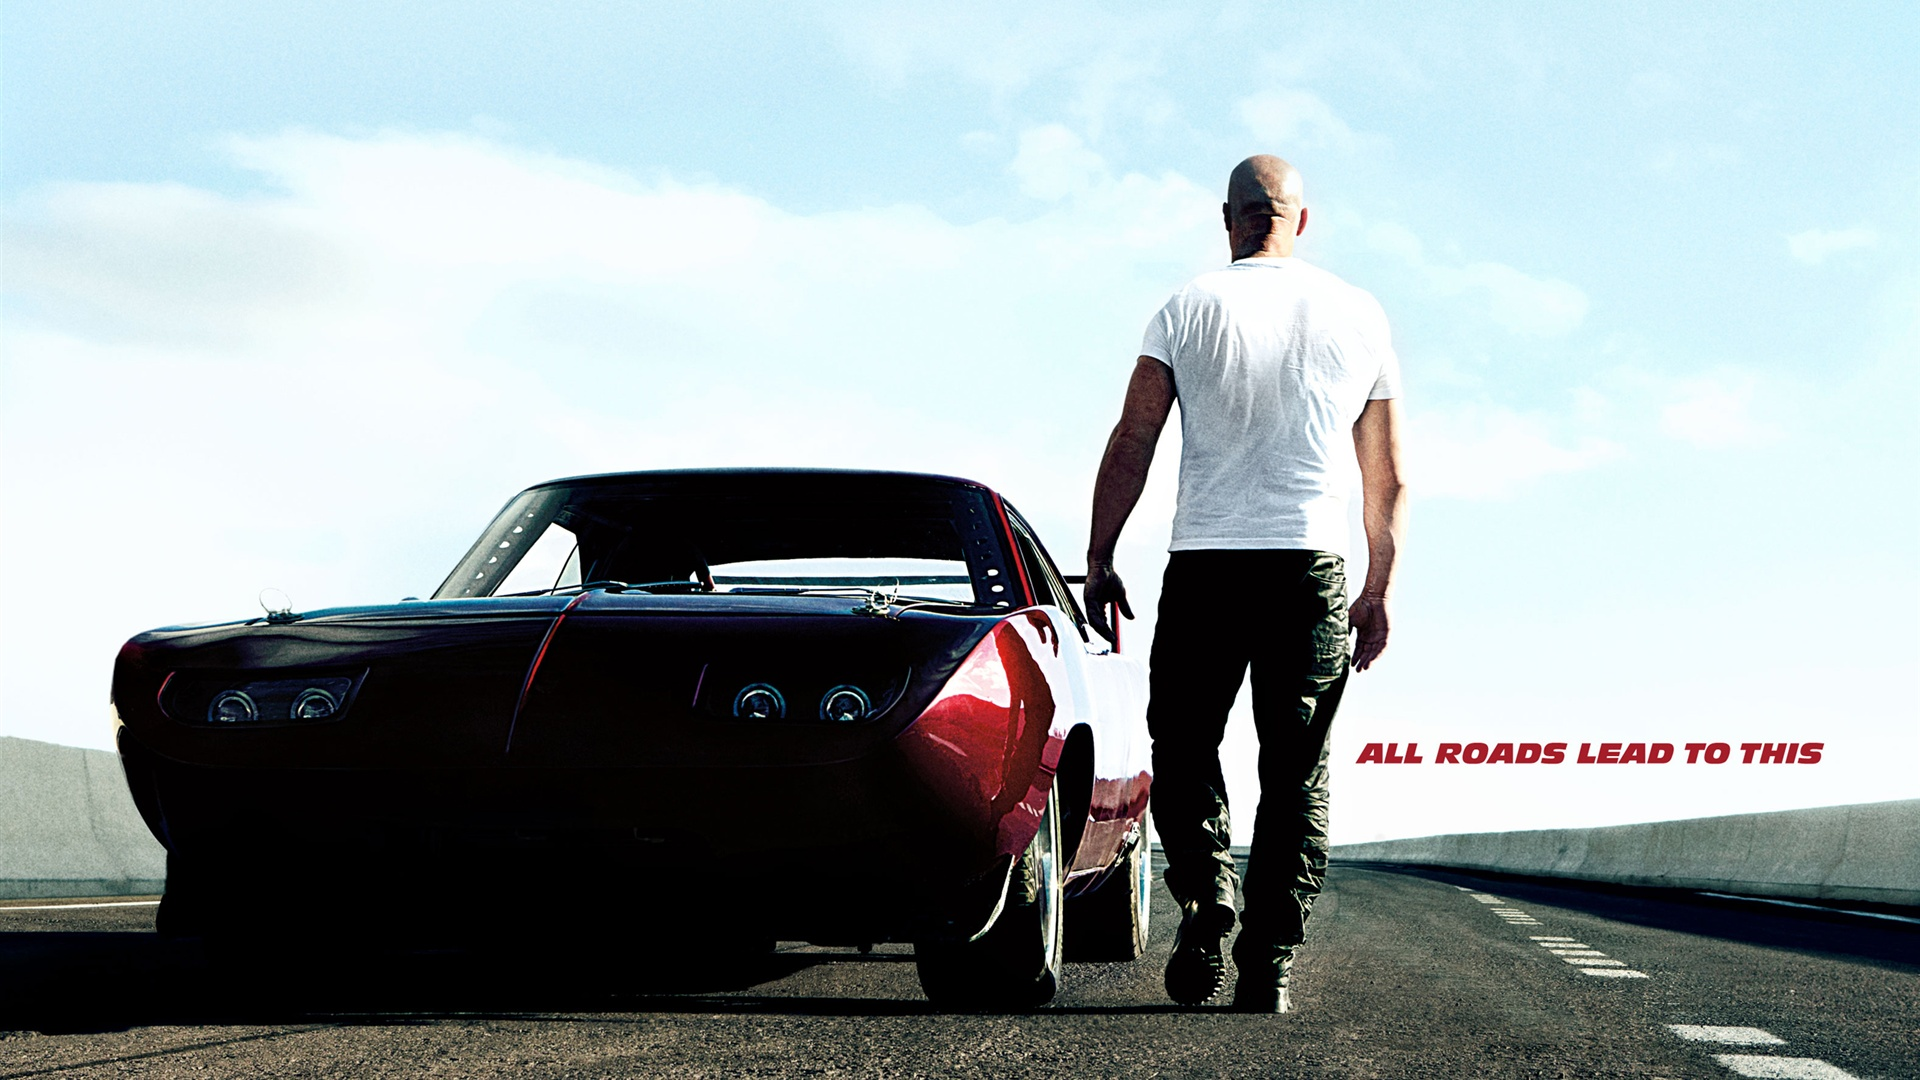 Fast And Furious 7 Quote HD Wallpaper 1920x1080